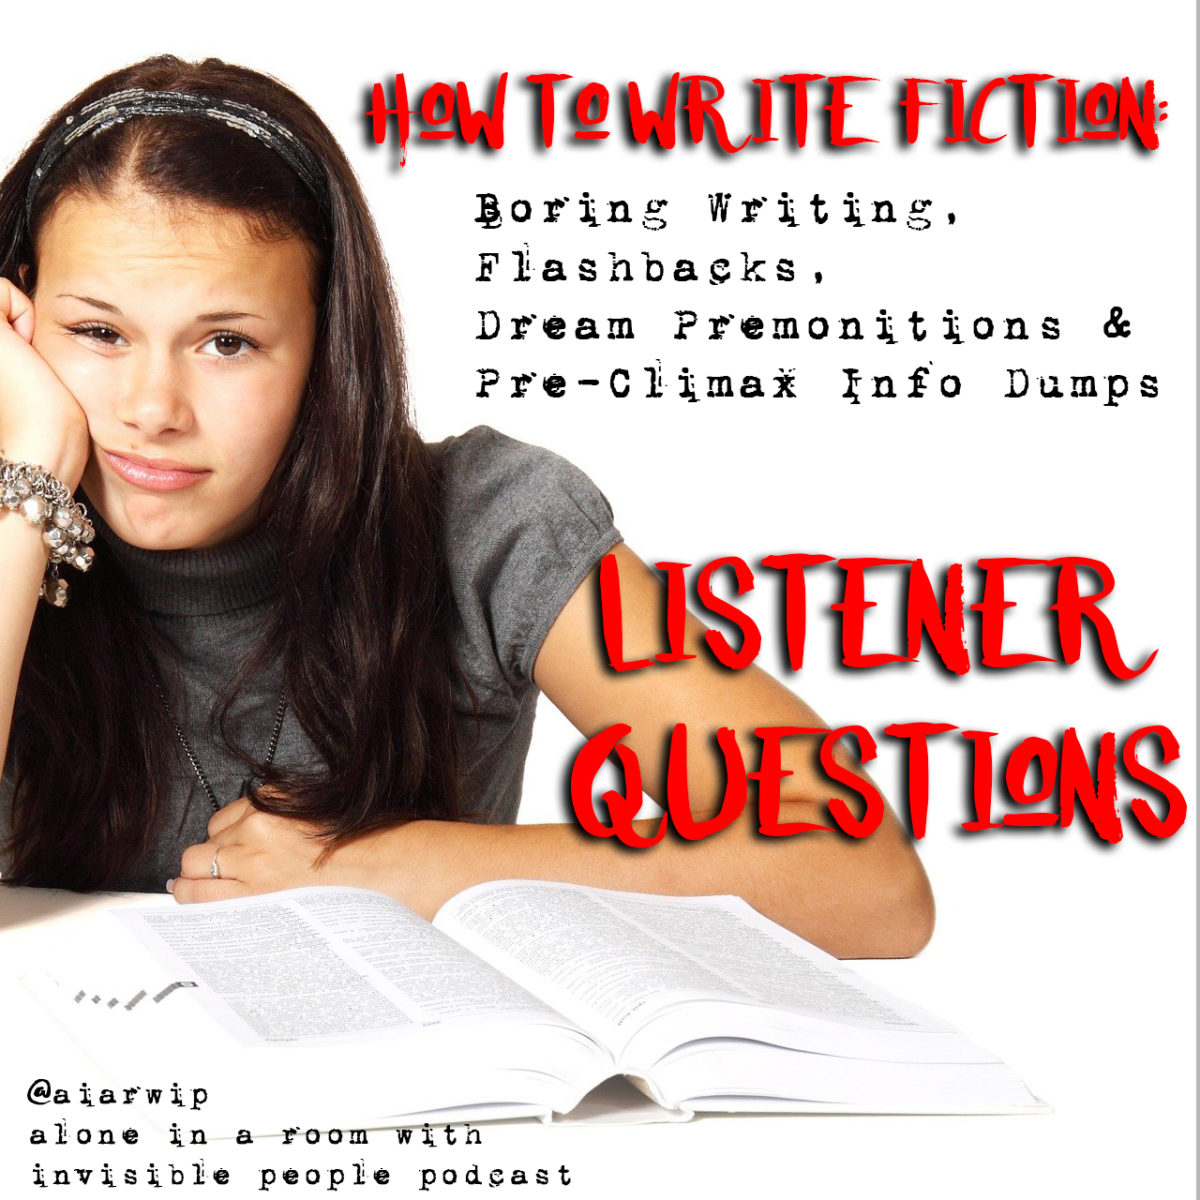 Episode 92 – How to Write Fiction: Boring Writing, Flashbacks, Dream Premonitions and Pre-Climax Info Dumps